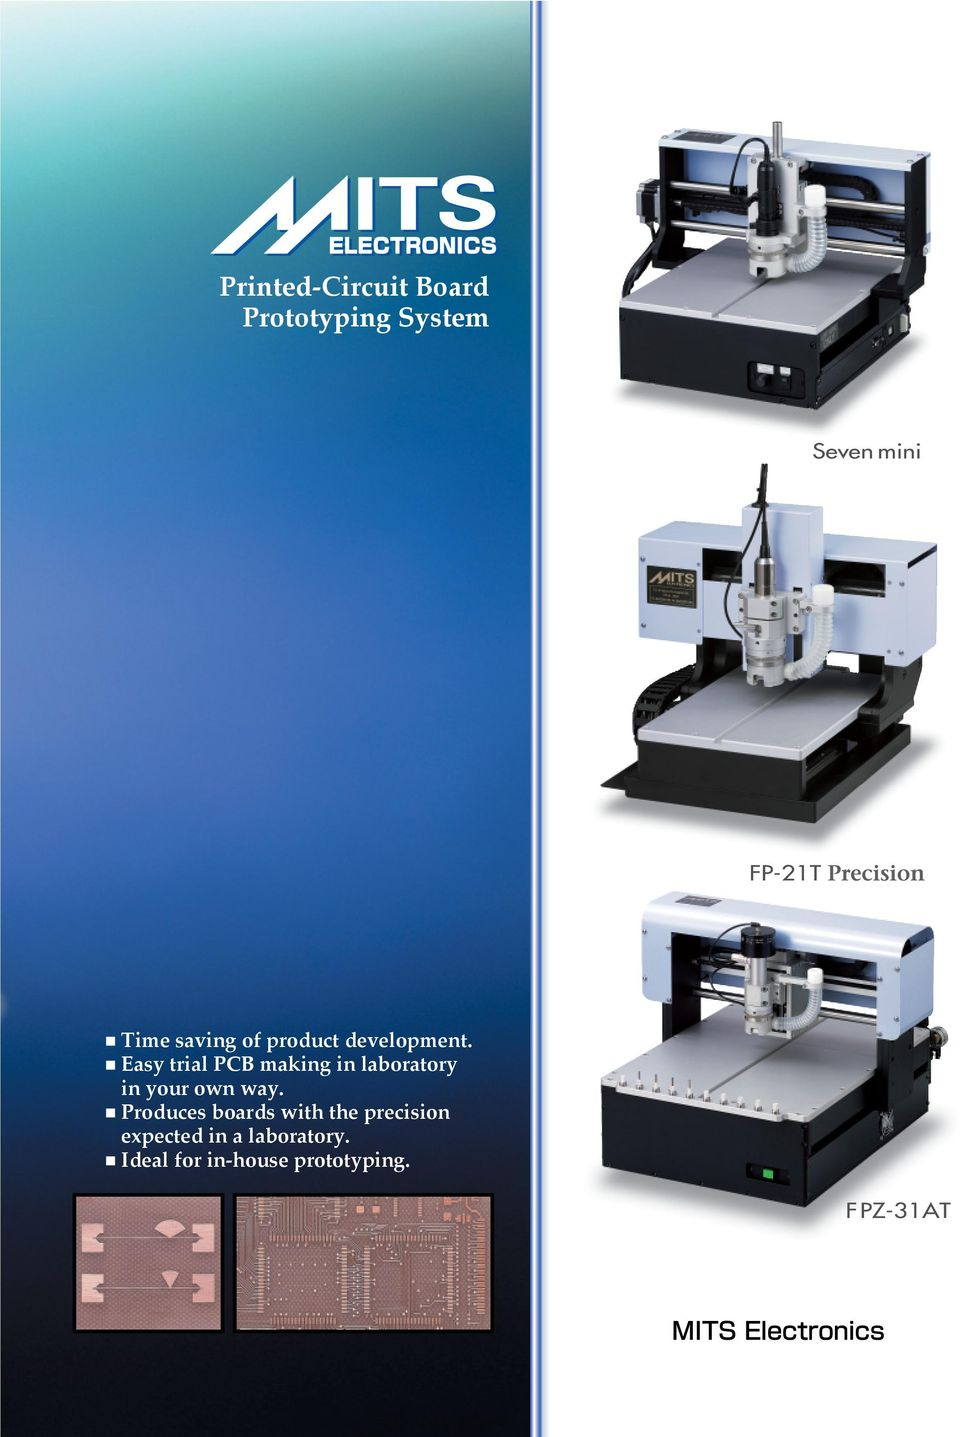 Printed Circuit Board Prototyping System Pdf Professional And Workpiece Holder With Stand Clamp At Easy Trial Pcb Making In Laboratory Your Own Way